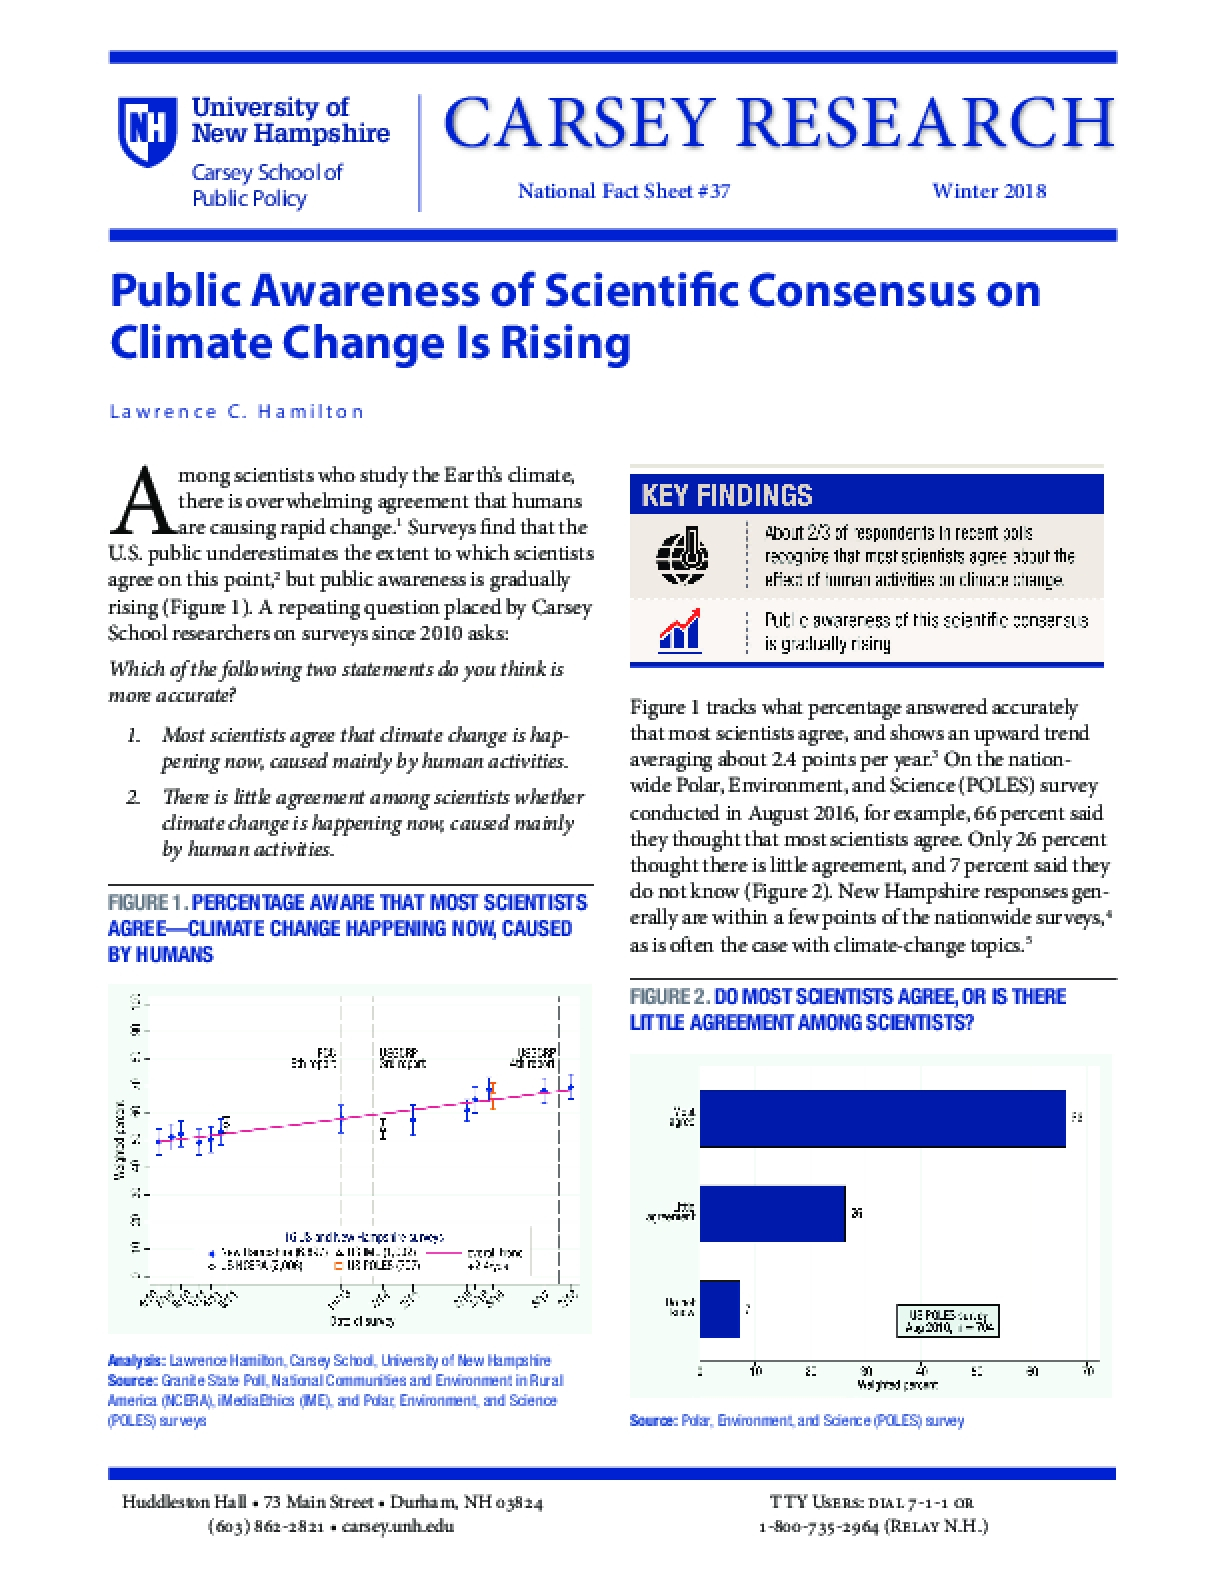 Public Awareness of Scientific Consensus on Climate Change Is Rising